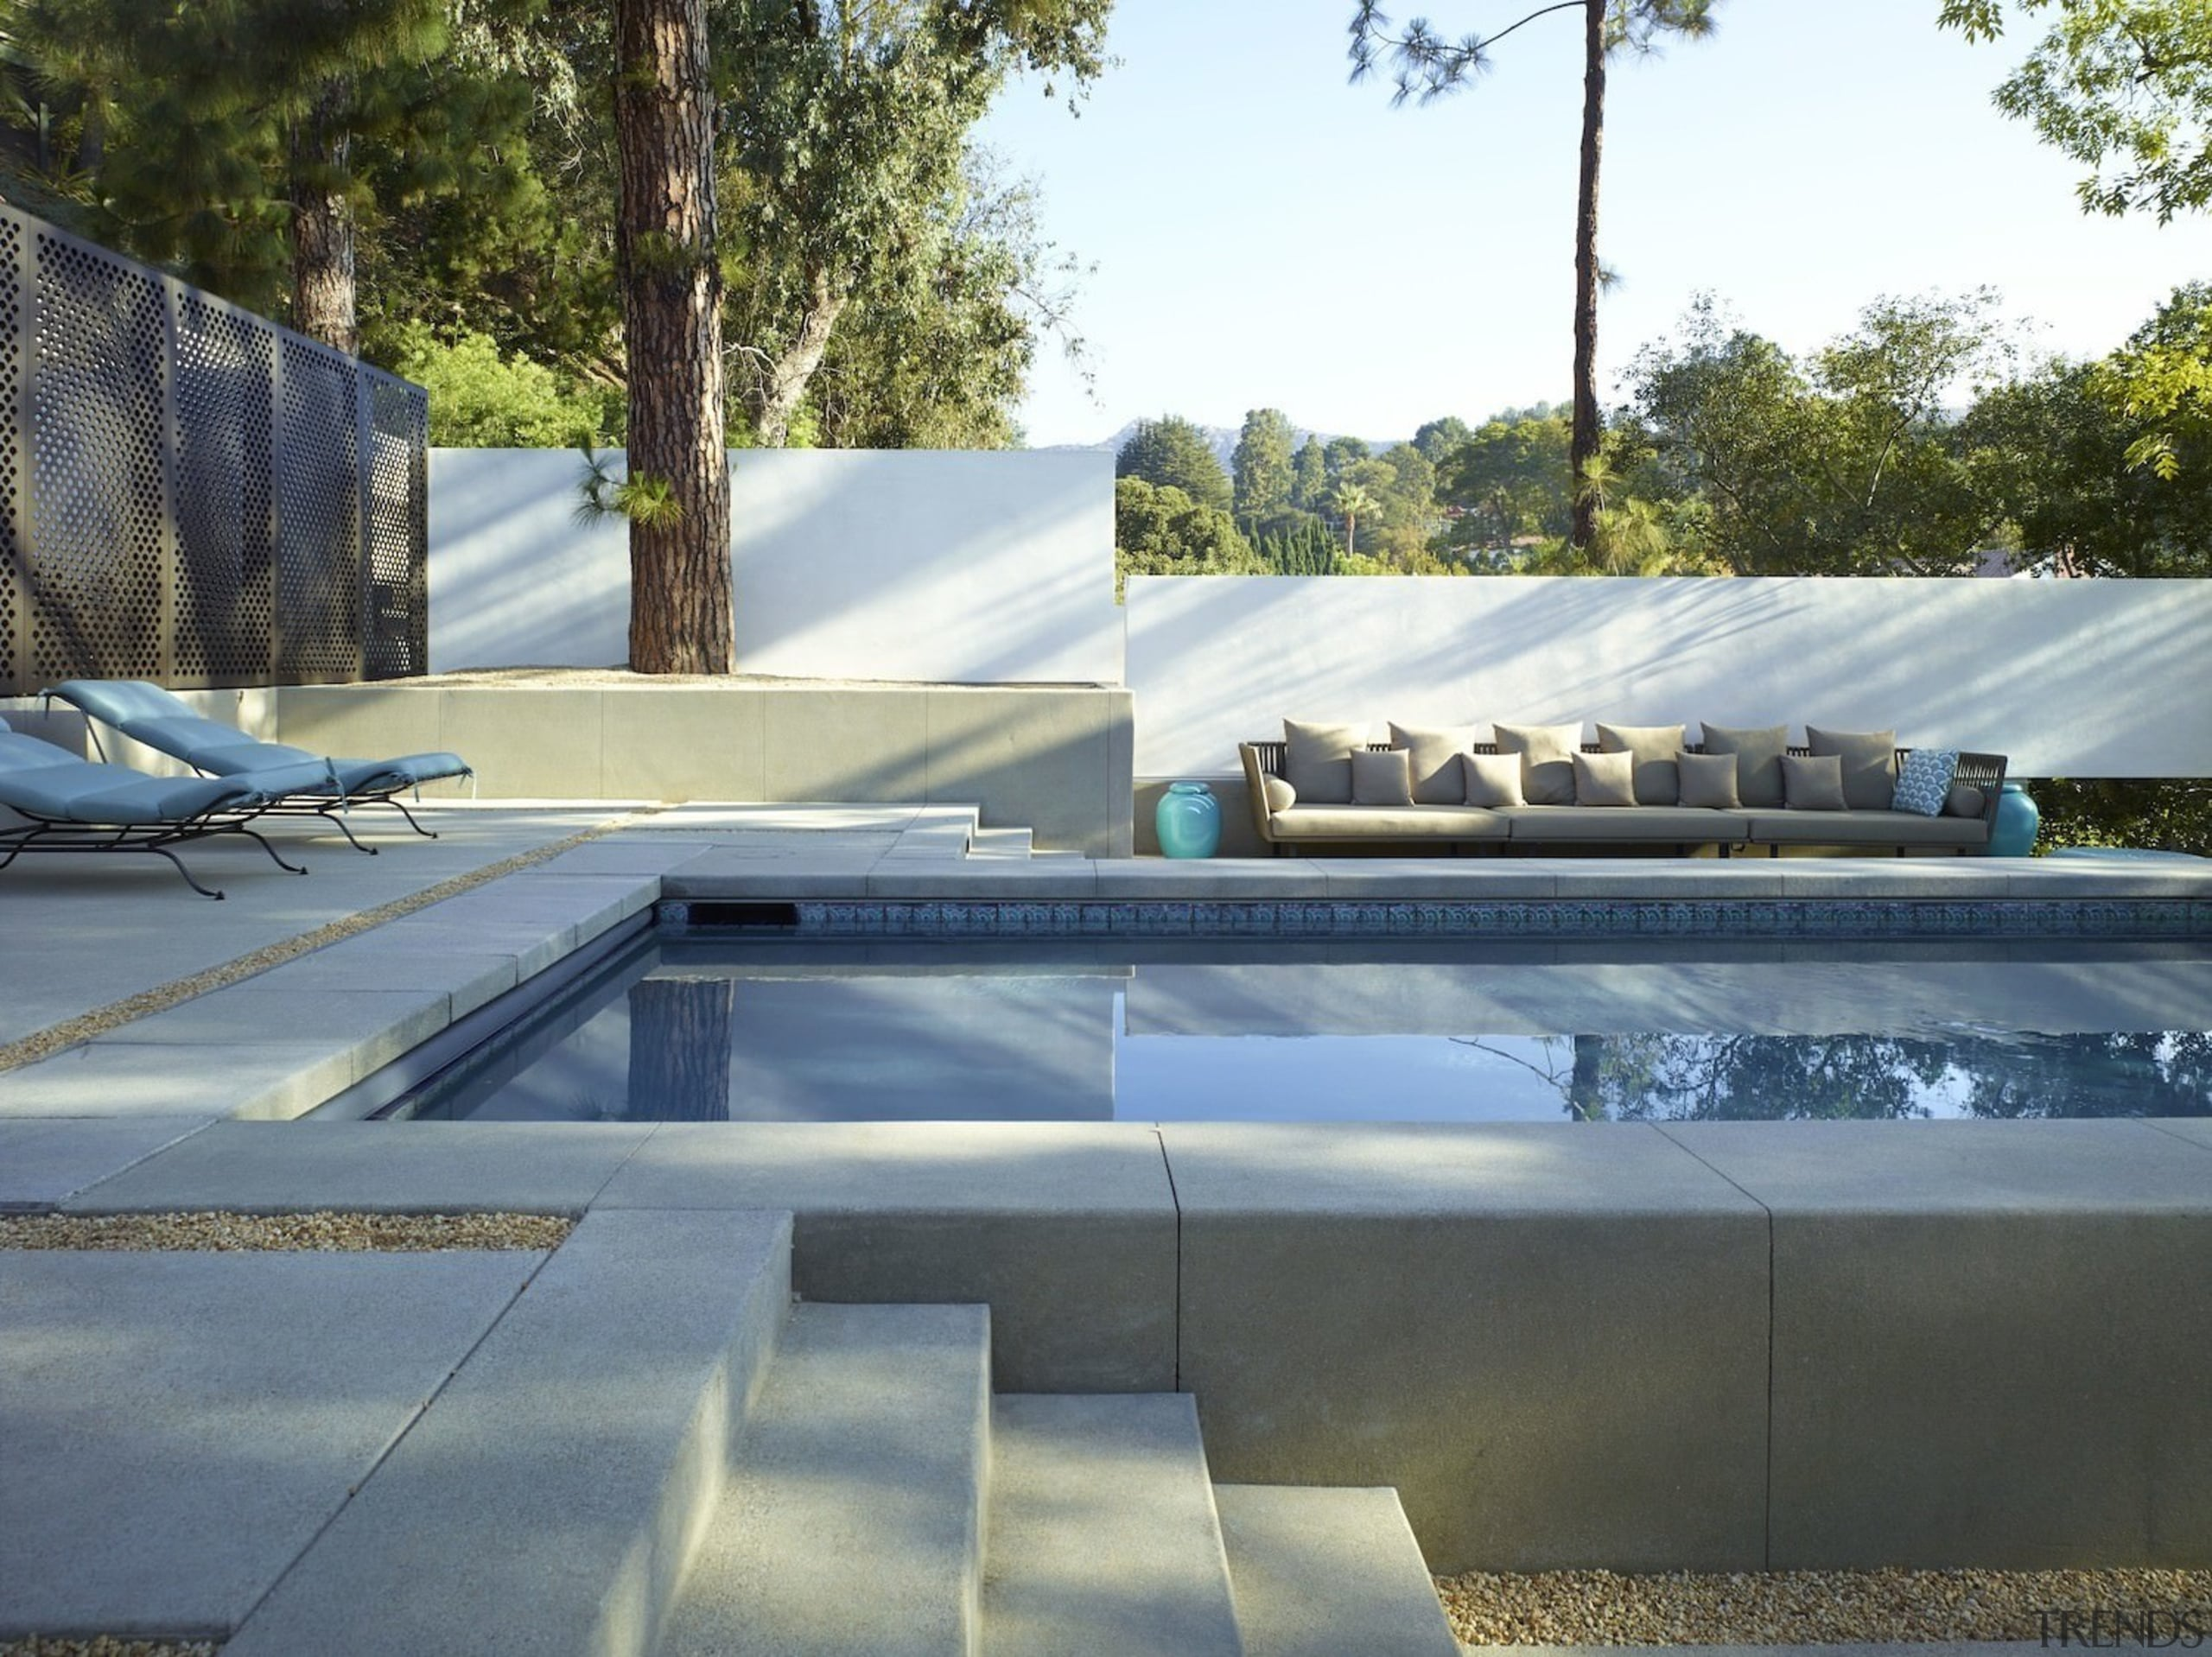 The pool area is spacious and features a architecture, automotive exterior, daylighting, house, outdoor structure, property, roof, swimming pool, water, gray